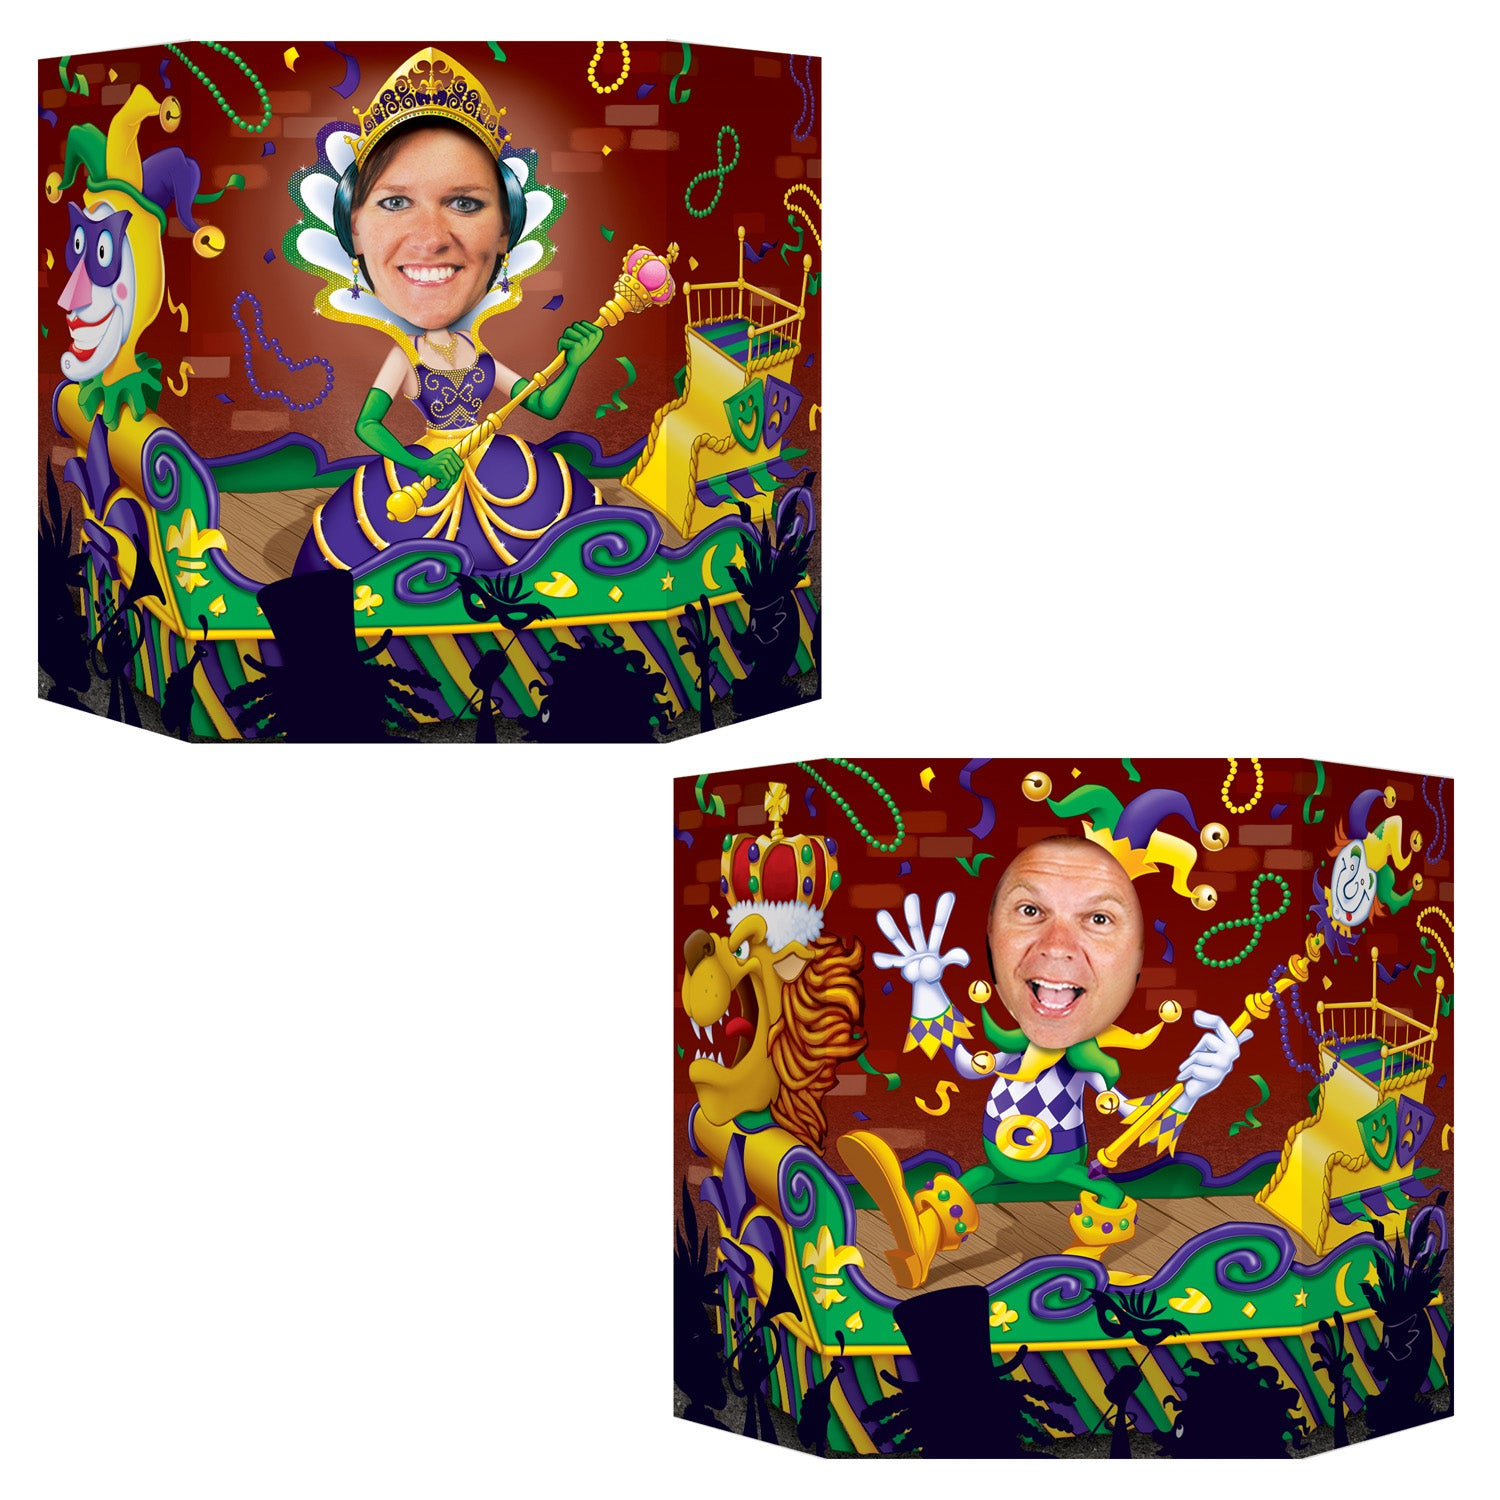 Mardi Gras Photo Prop by Beistle - Mardi Gras Theme Decorations